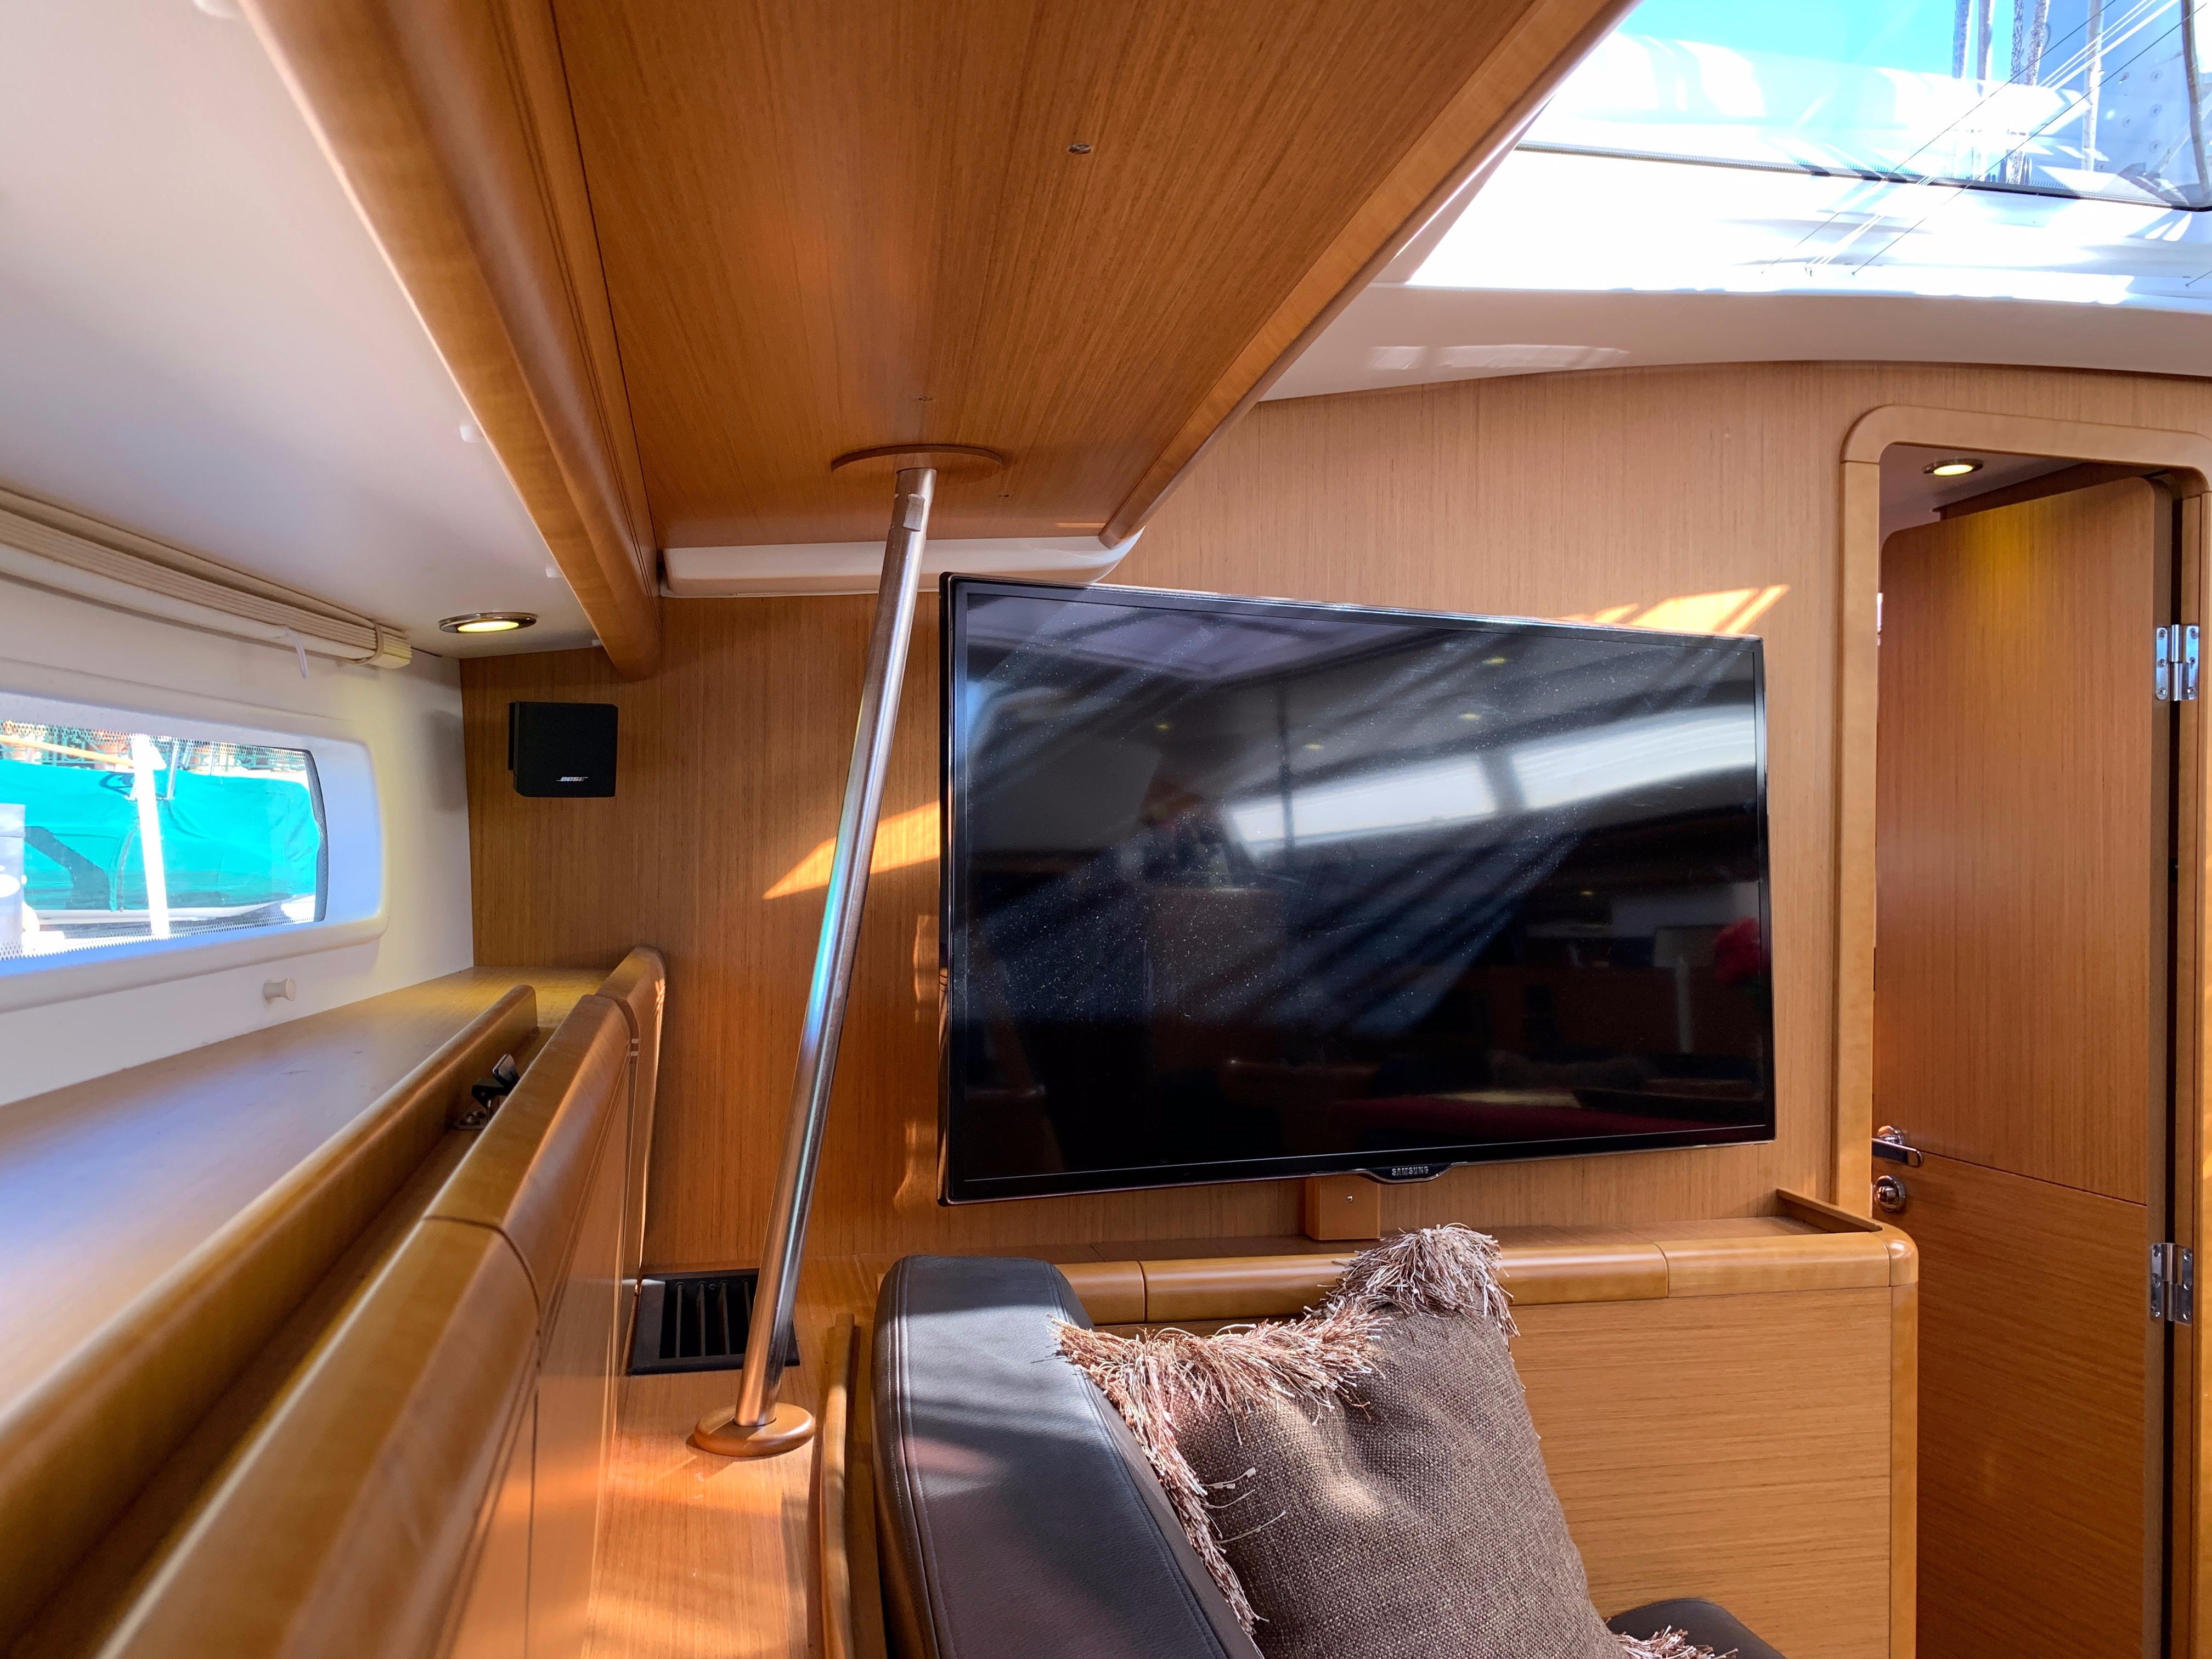 Wild Thing Jeanneau 2013 57 57 Yacht for Sale in US 4fc49688da70f